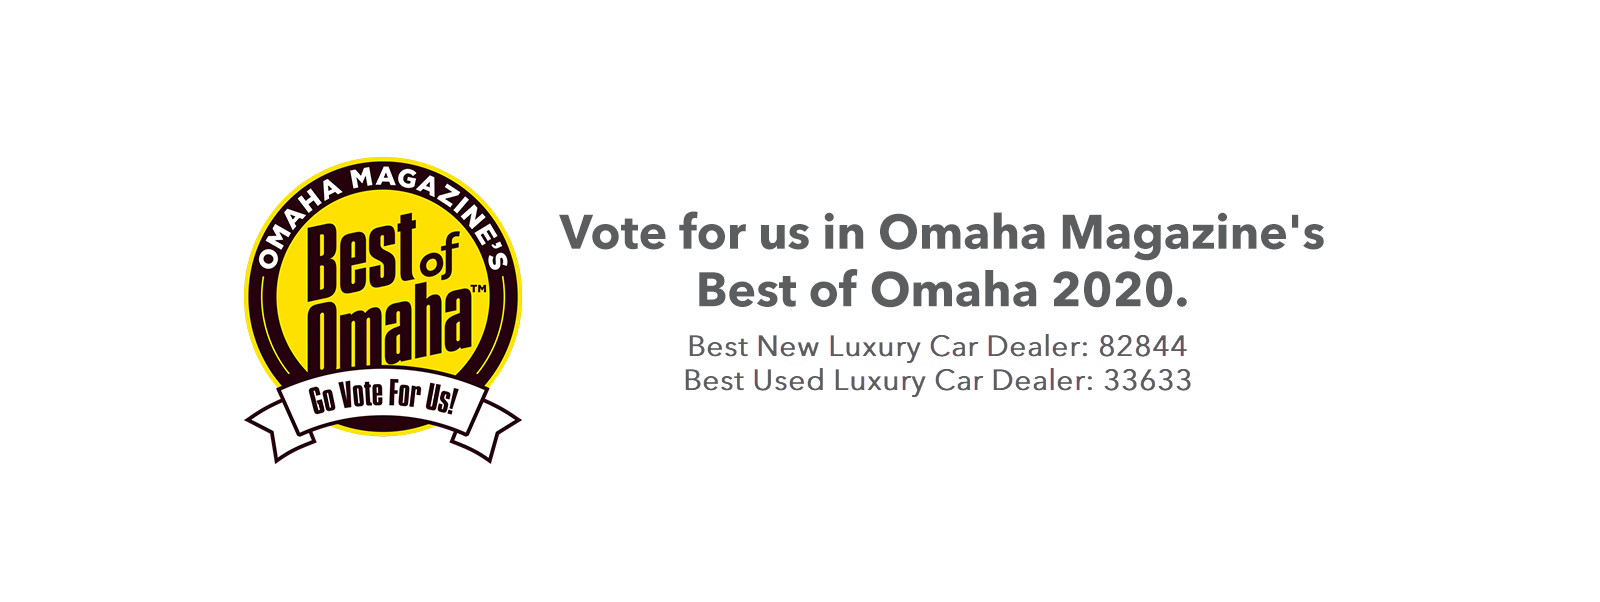 Vote for Best of Omaha 2020